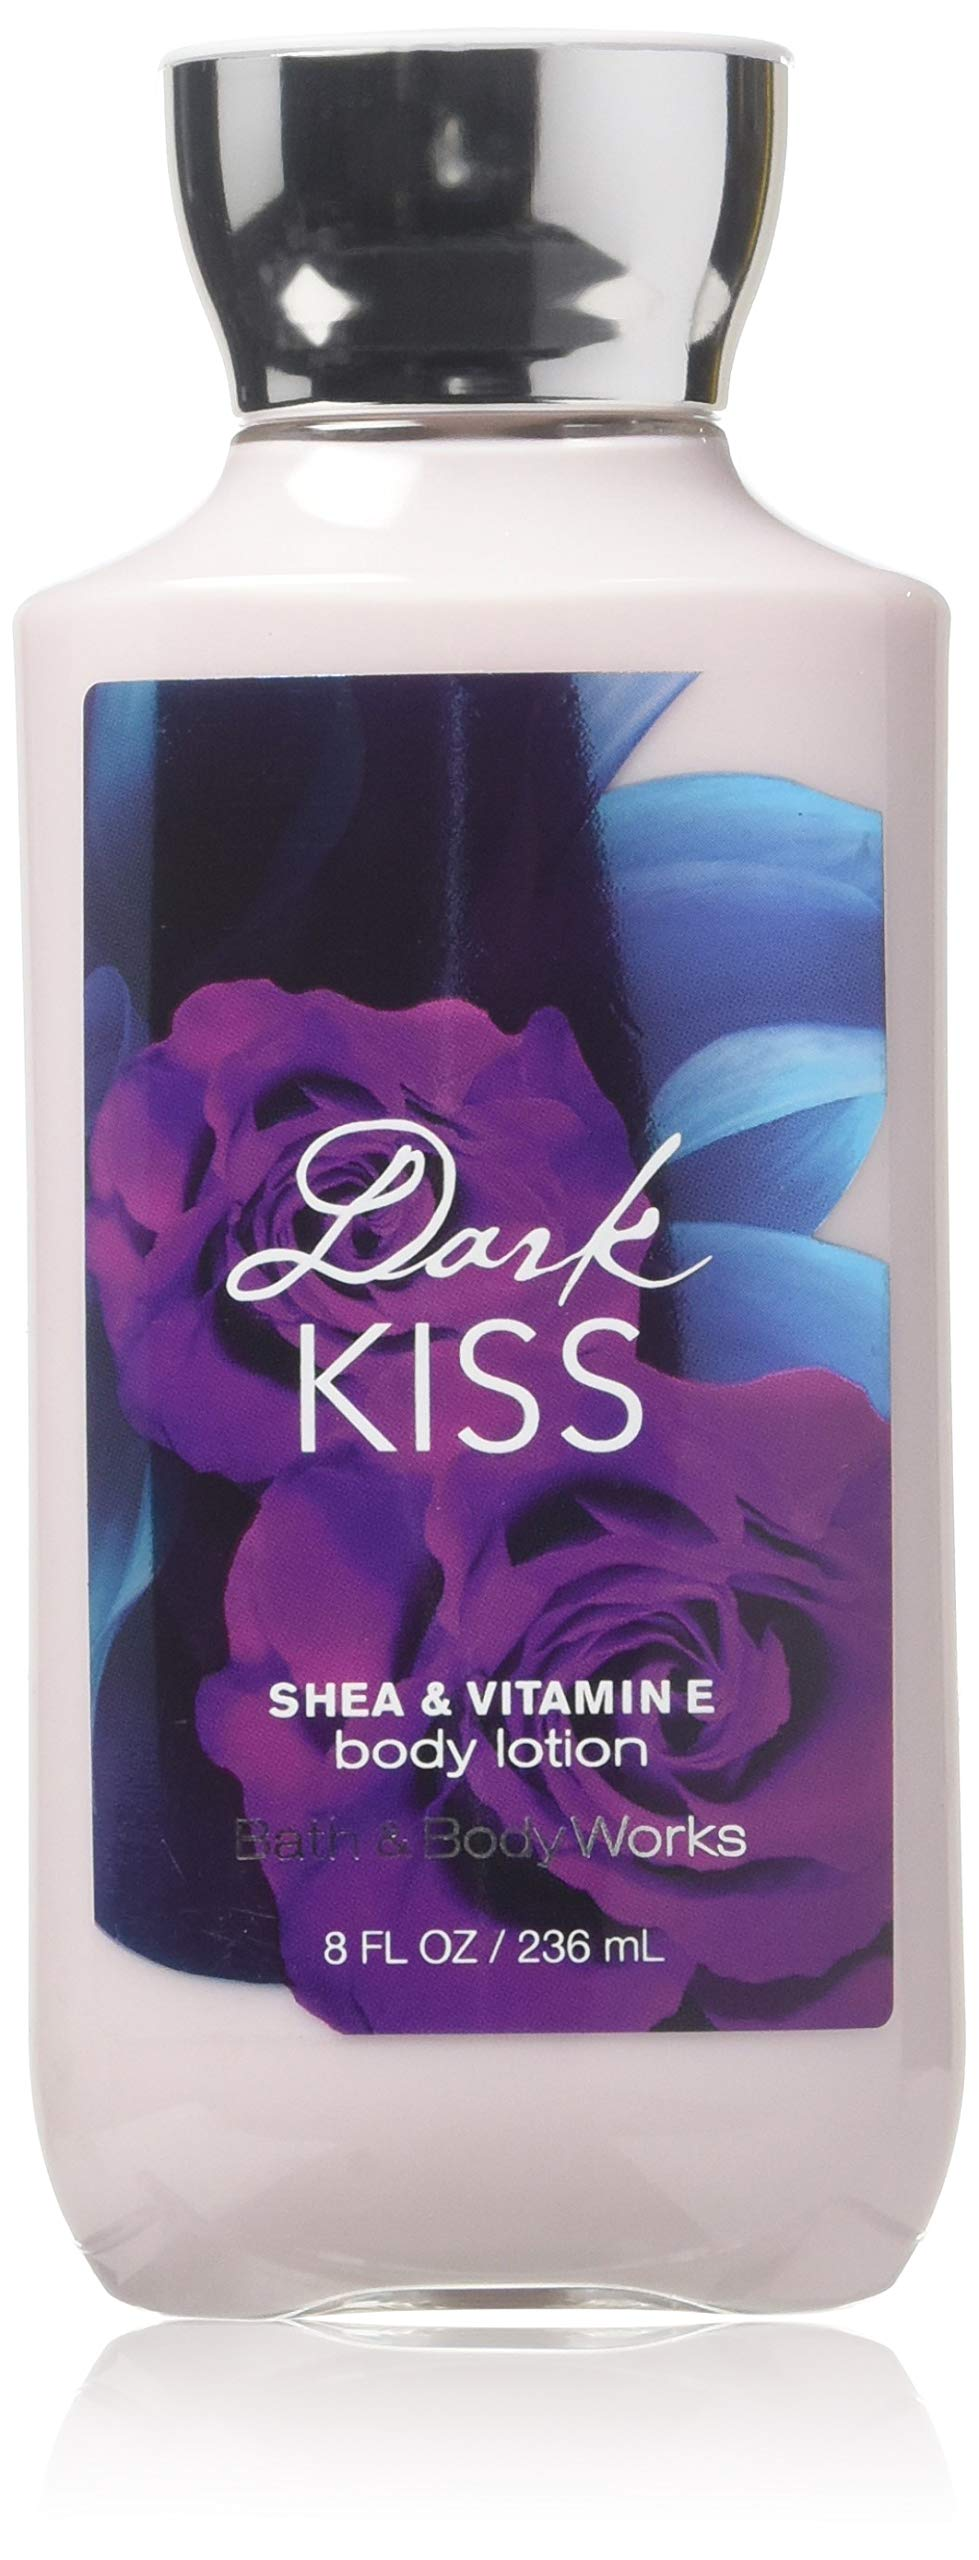 Bath & Body Works, Signature Collection Body Lotion, Dark Kiss, 8 Ounce